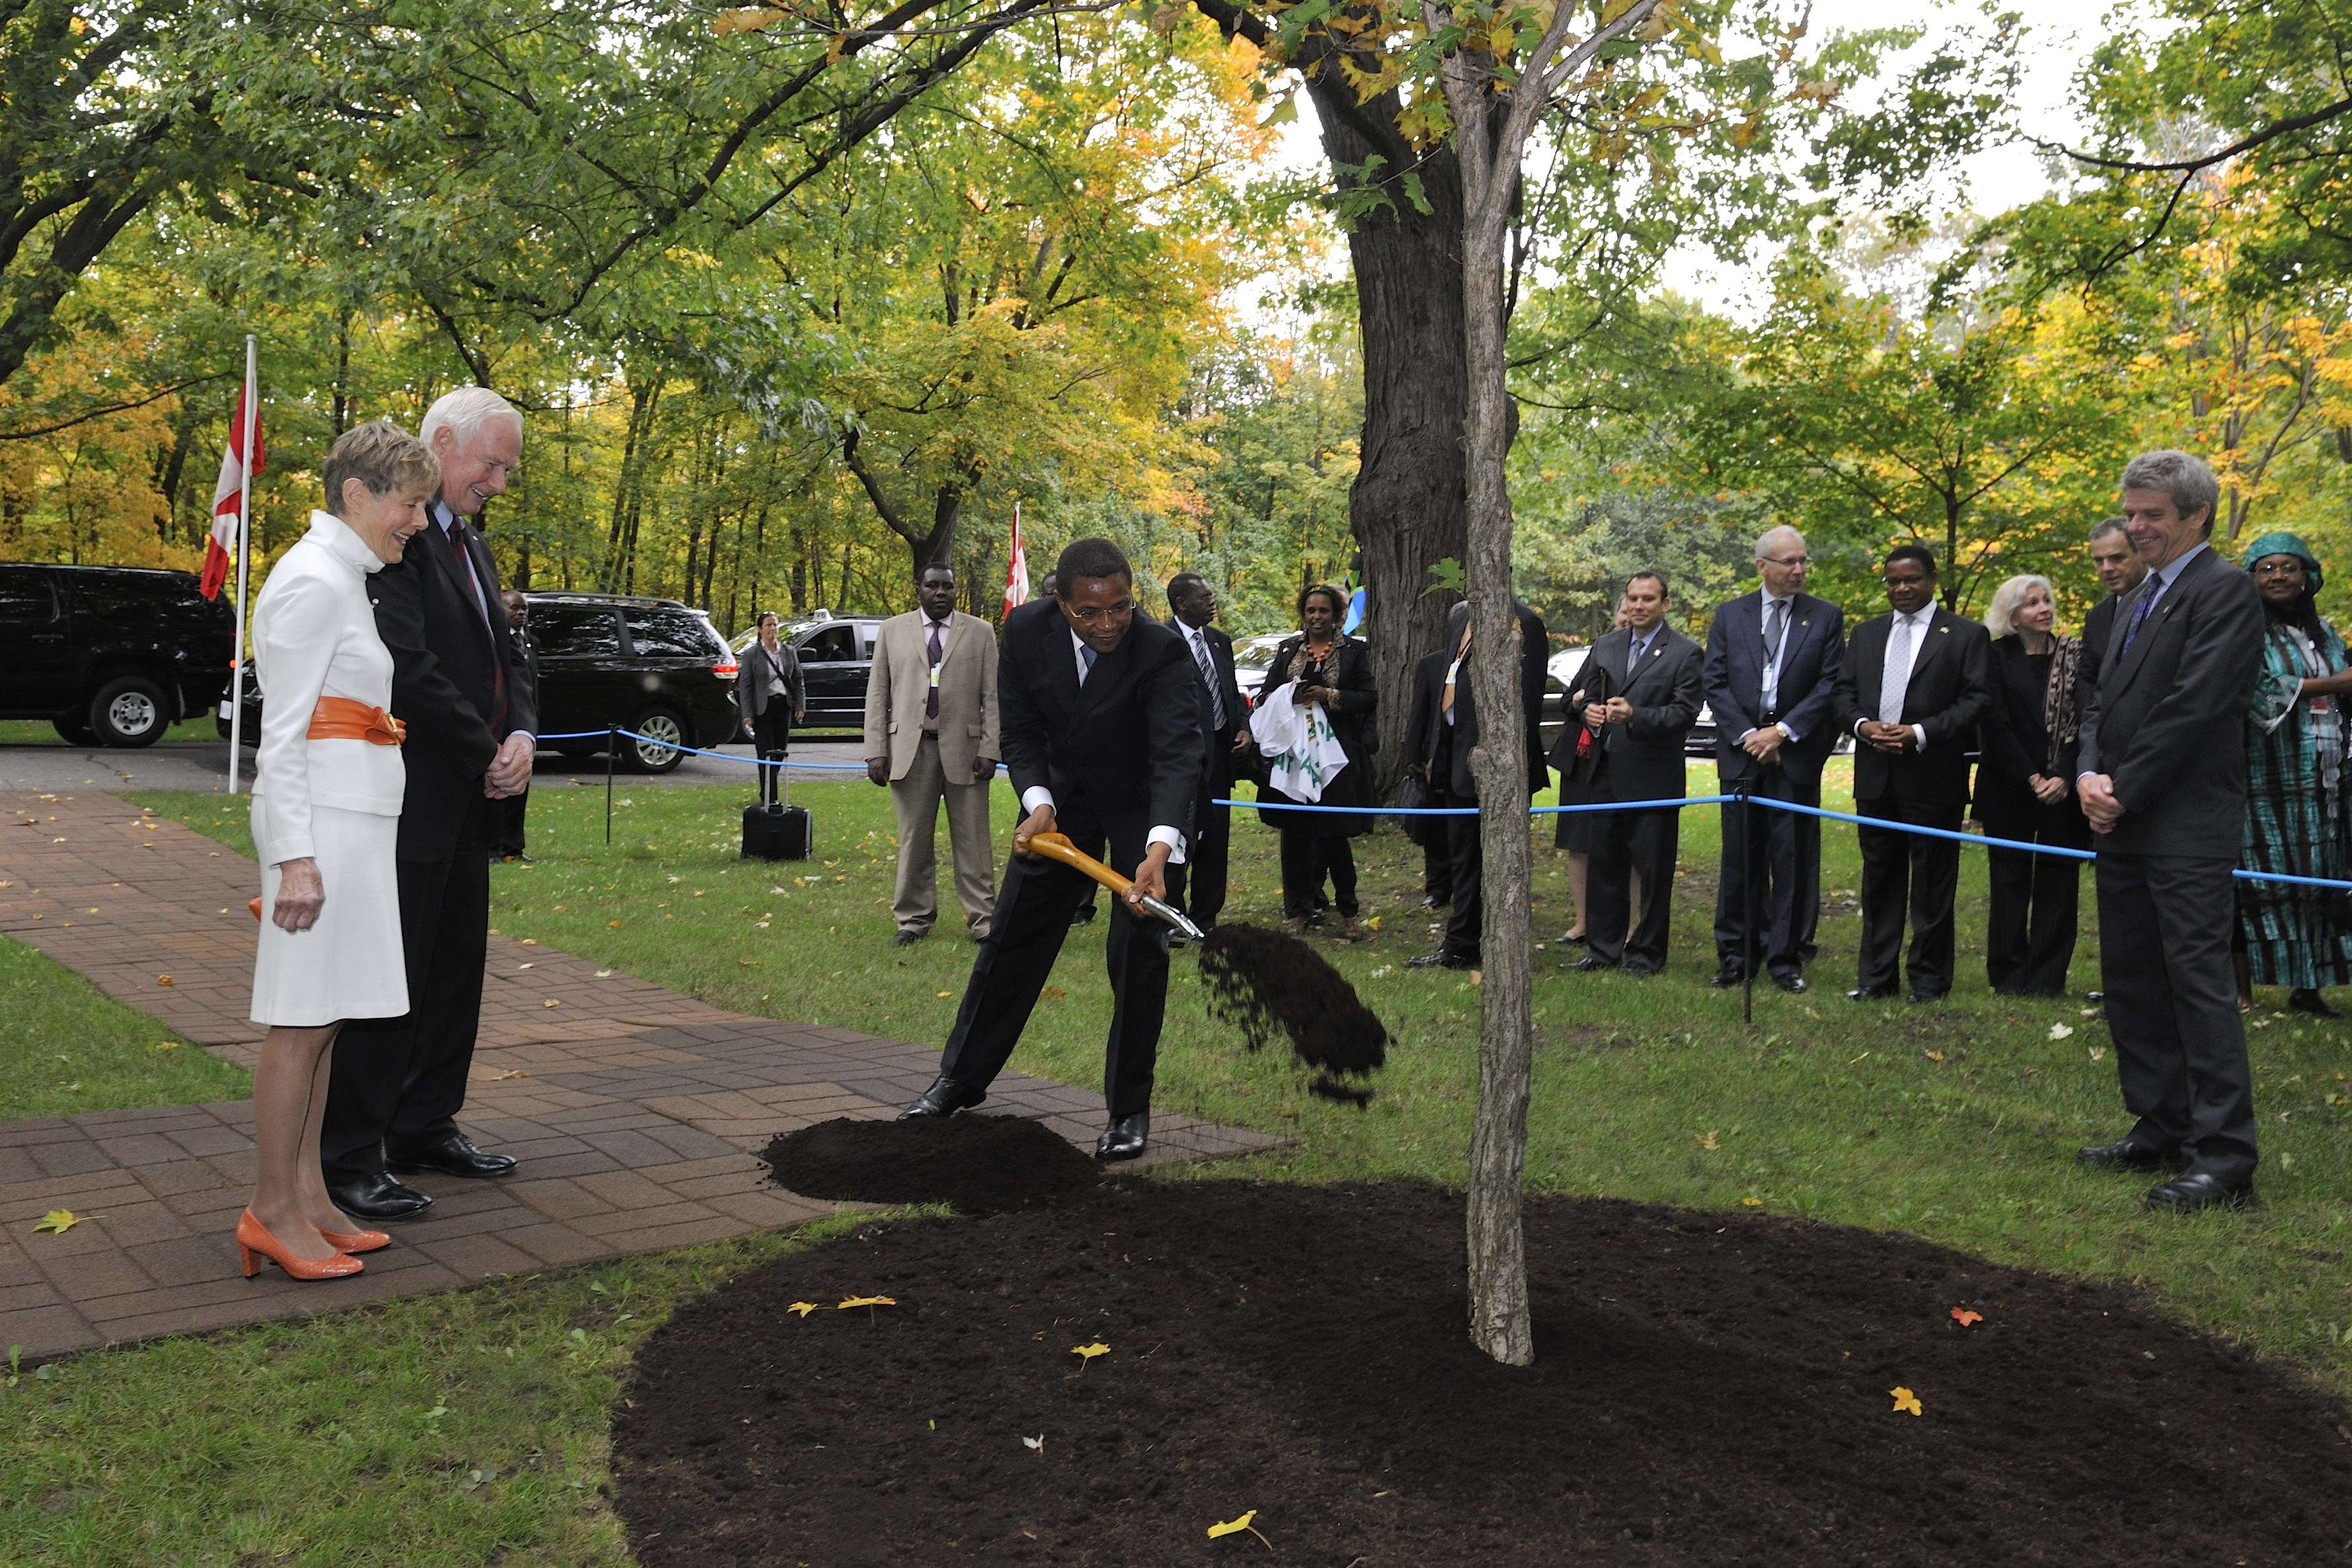 President Kikwete planted a bur oak (Quercus macrocarpa) along the main drive at Rideau Hall to commemorate his State visit to Canada.